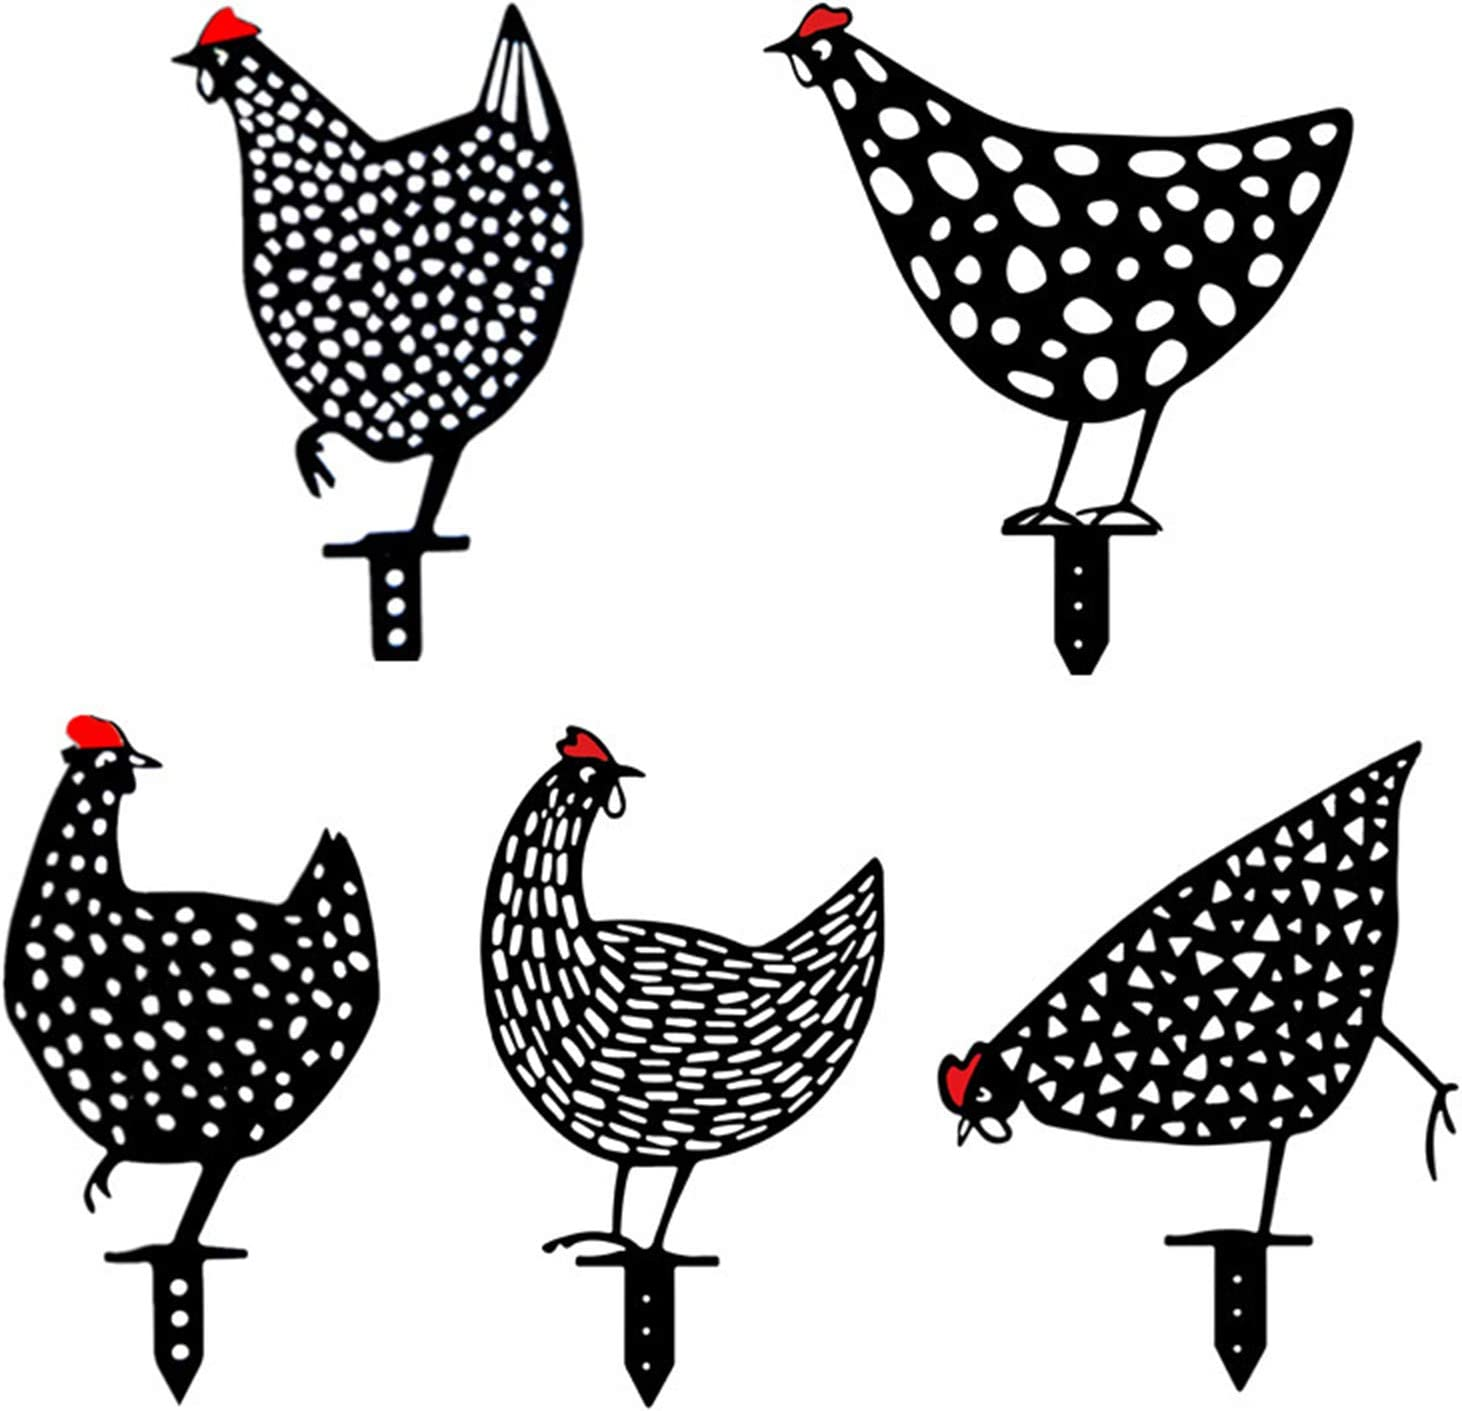 5 Pcs Chicken Runs for Yard, Chicken Yard Art, Decorative Lifelike Rooster Garden Stakes, Acrylic Chicken Statue Garden Yard Decor, Outdoor Chicken Shape Art Sculpture Rooster Statue for Lawns Gardens